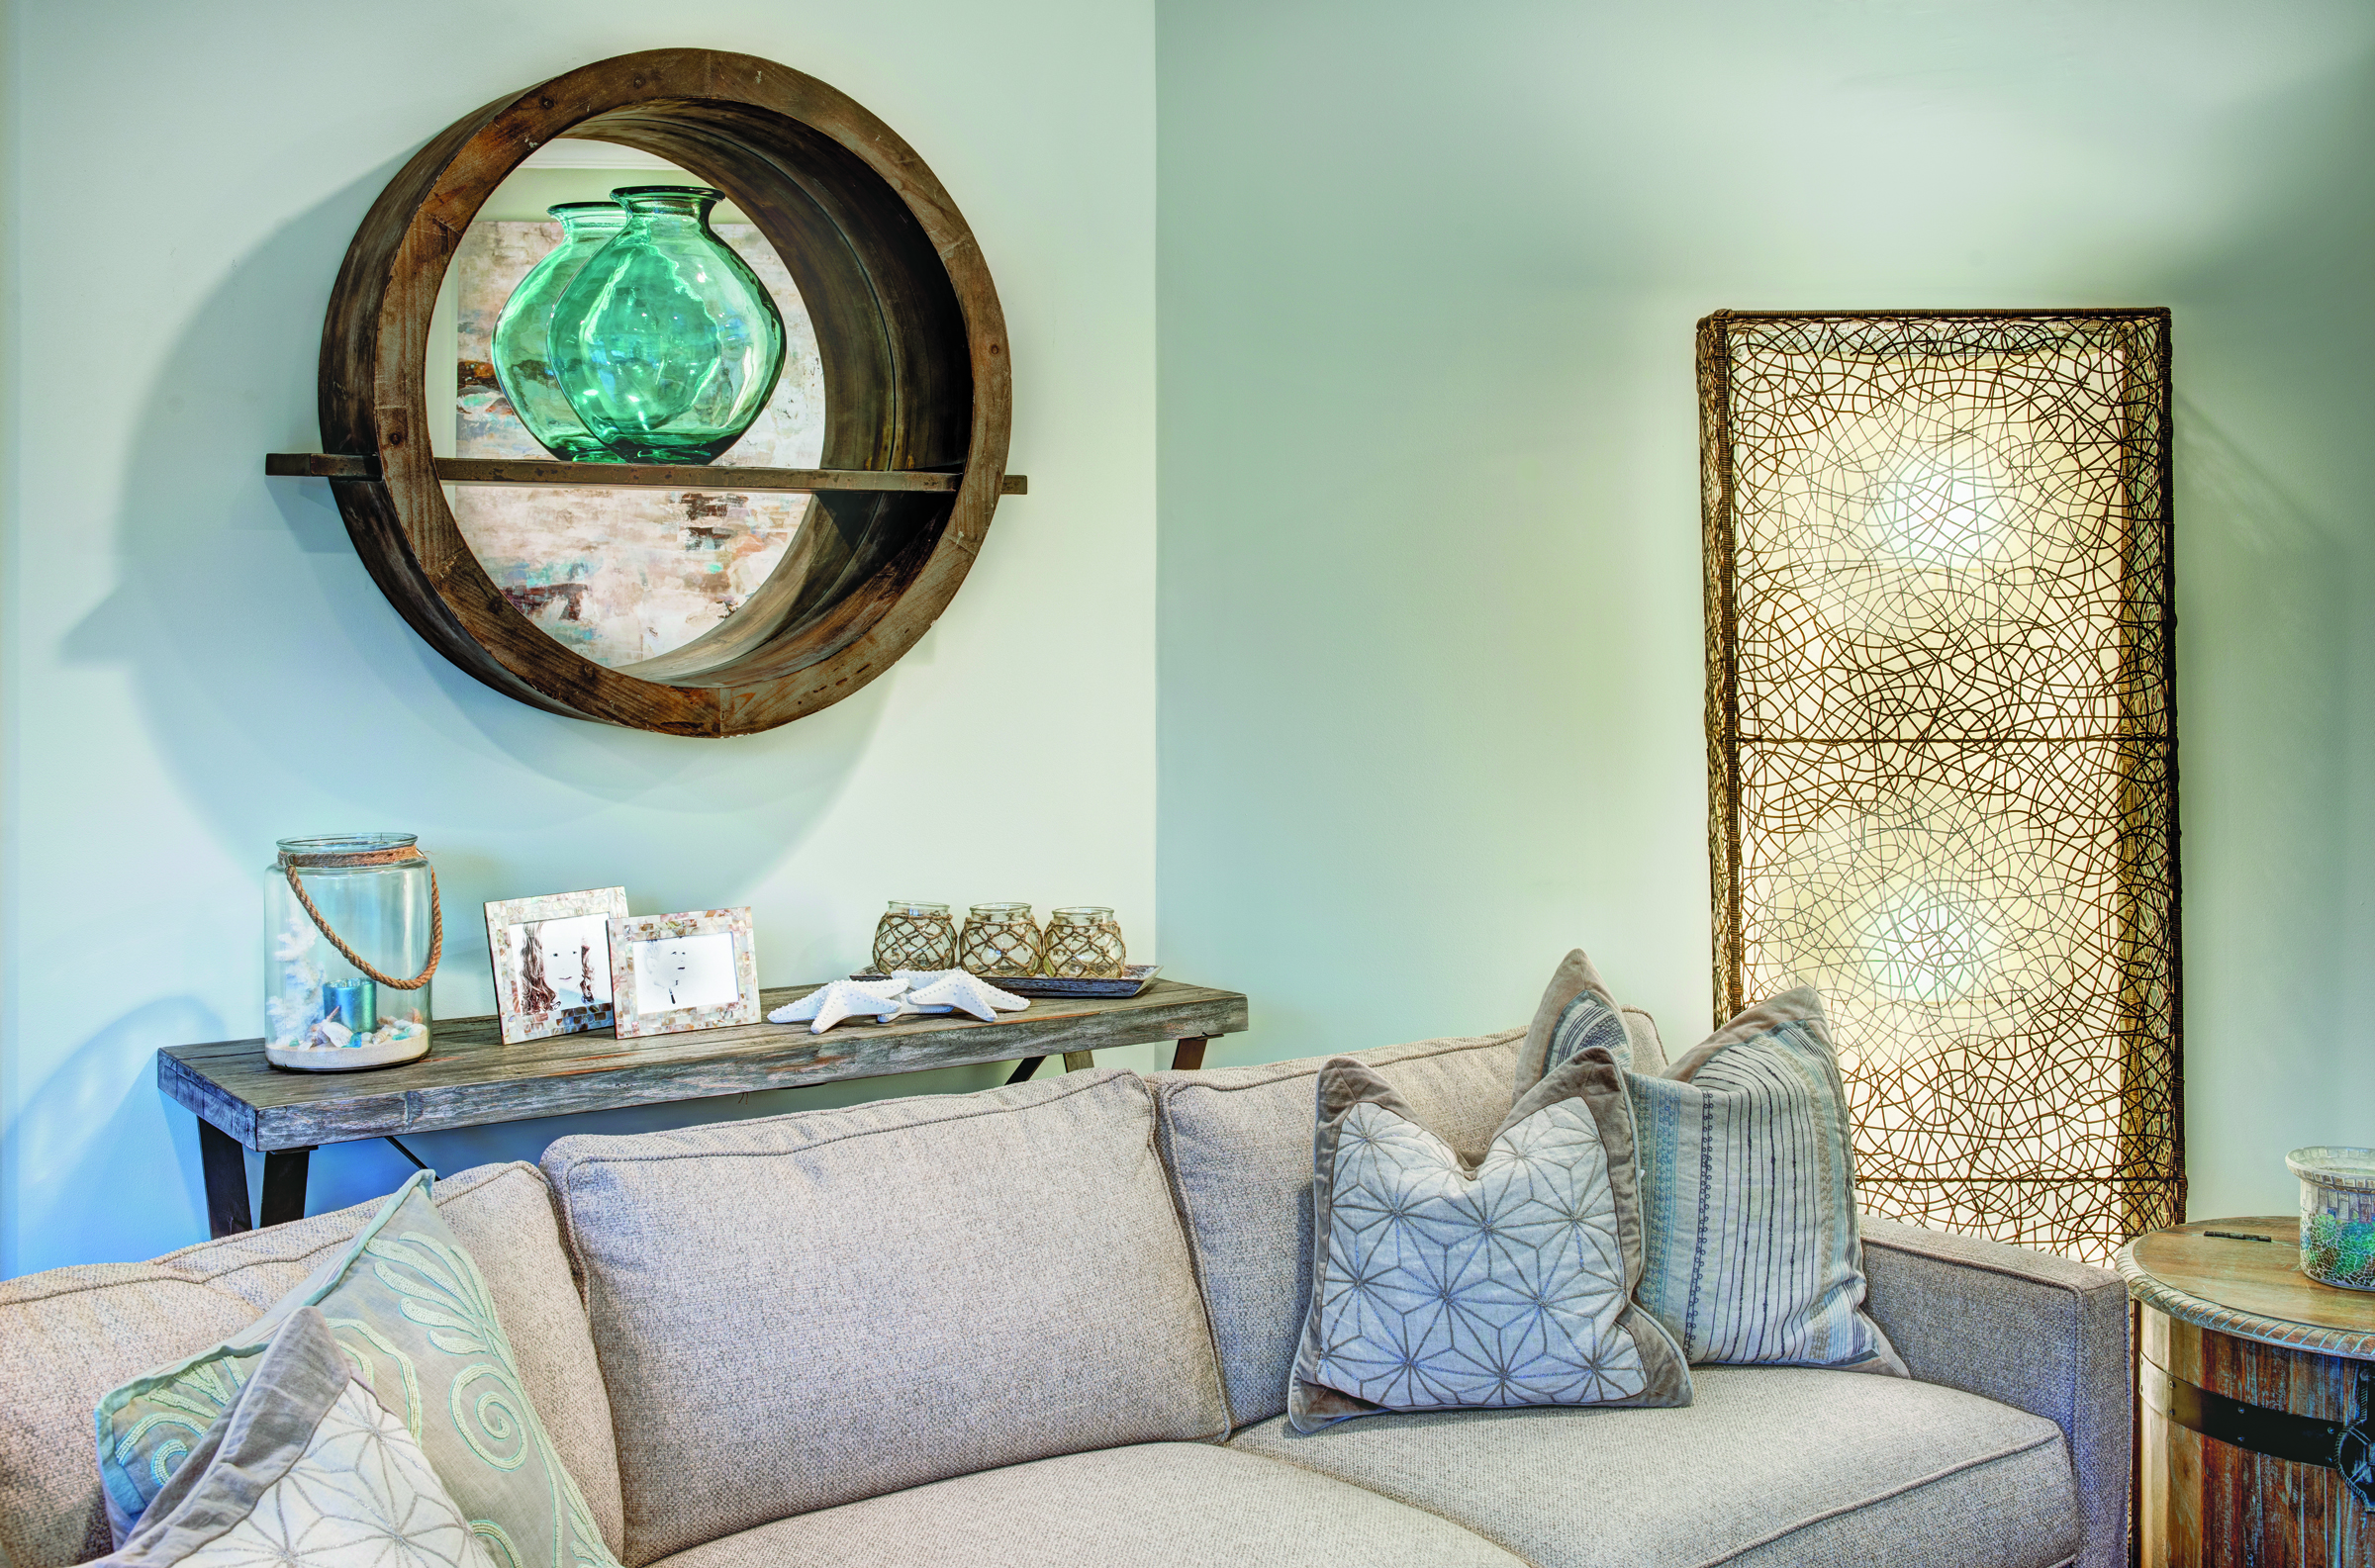 Lighting and mixed accent pieces create a warm and inviting family room.